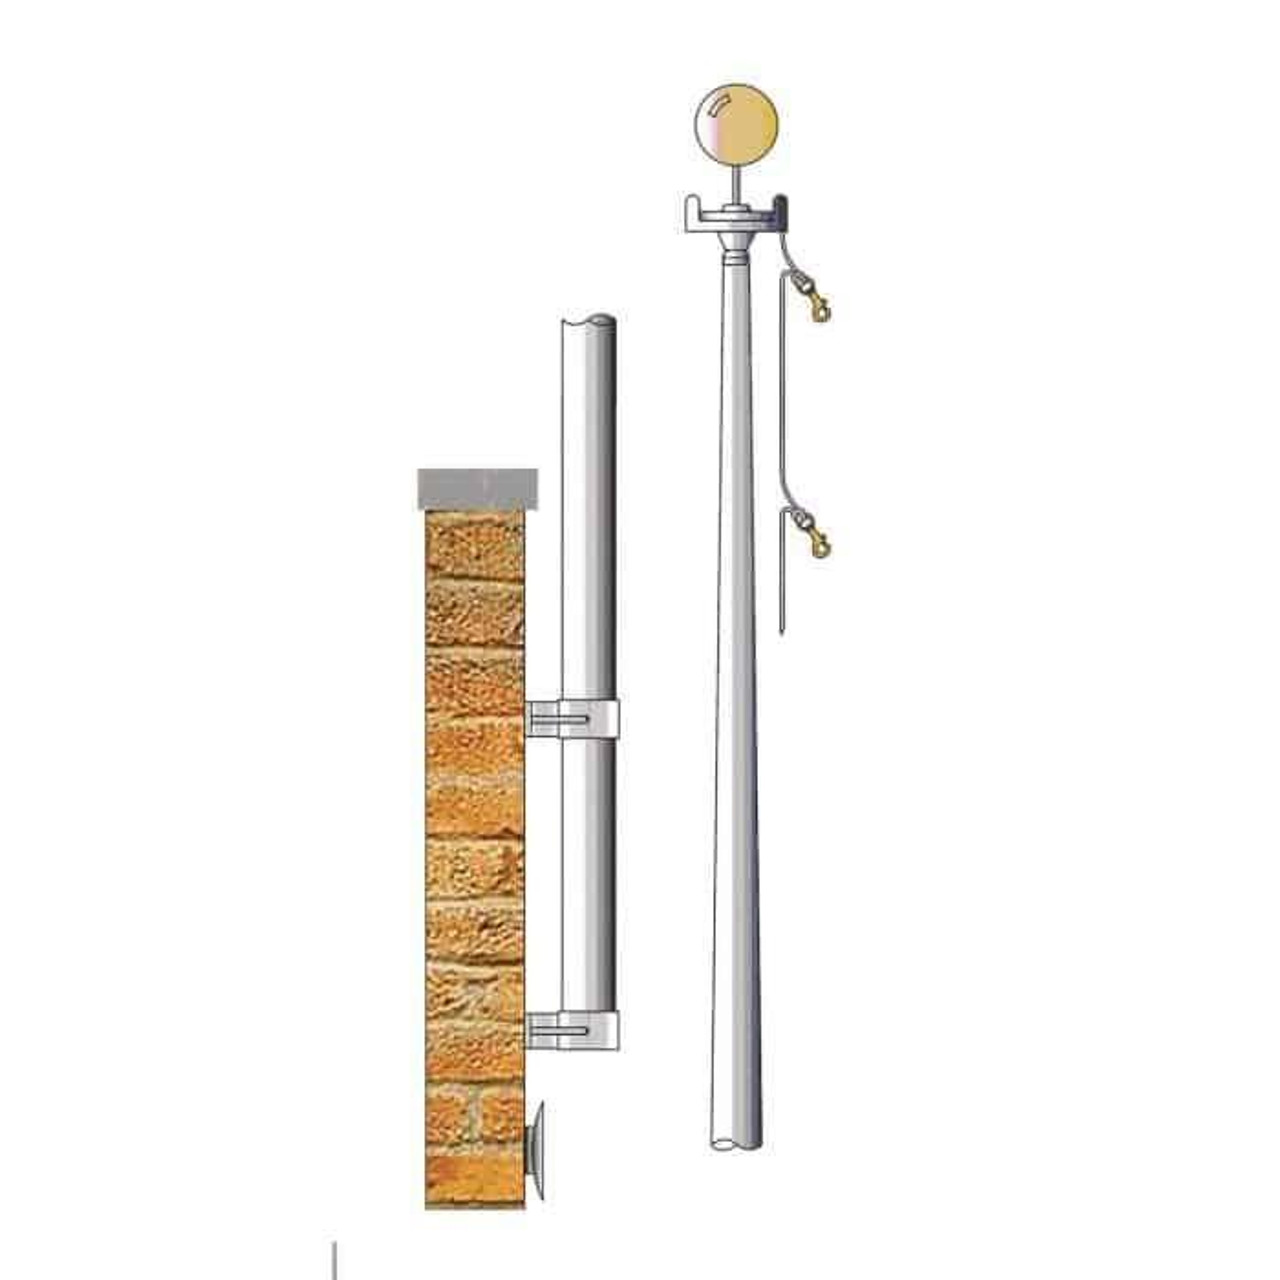 35 Vertical Wall Mounted Flagpole LVW35